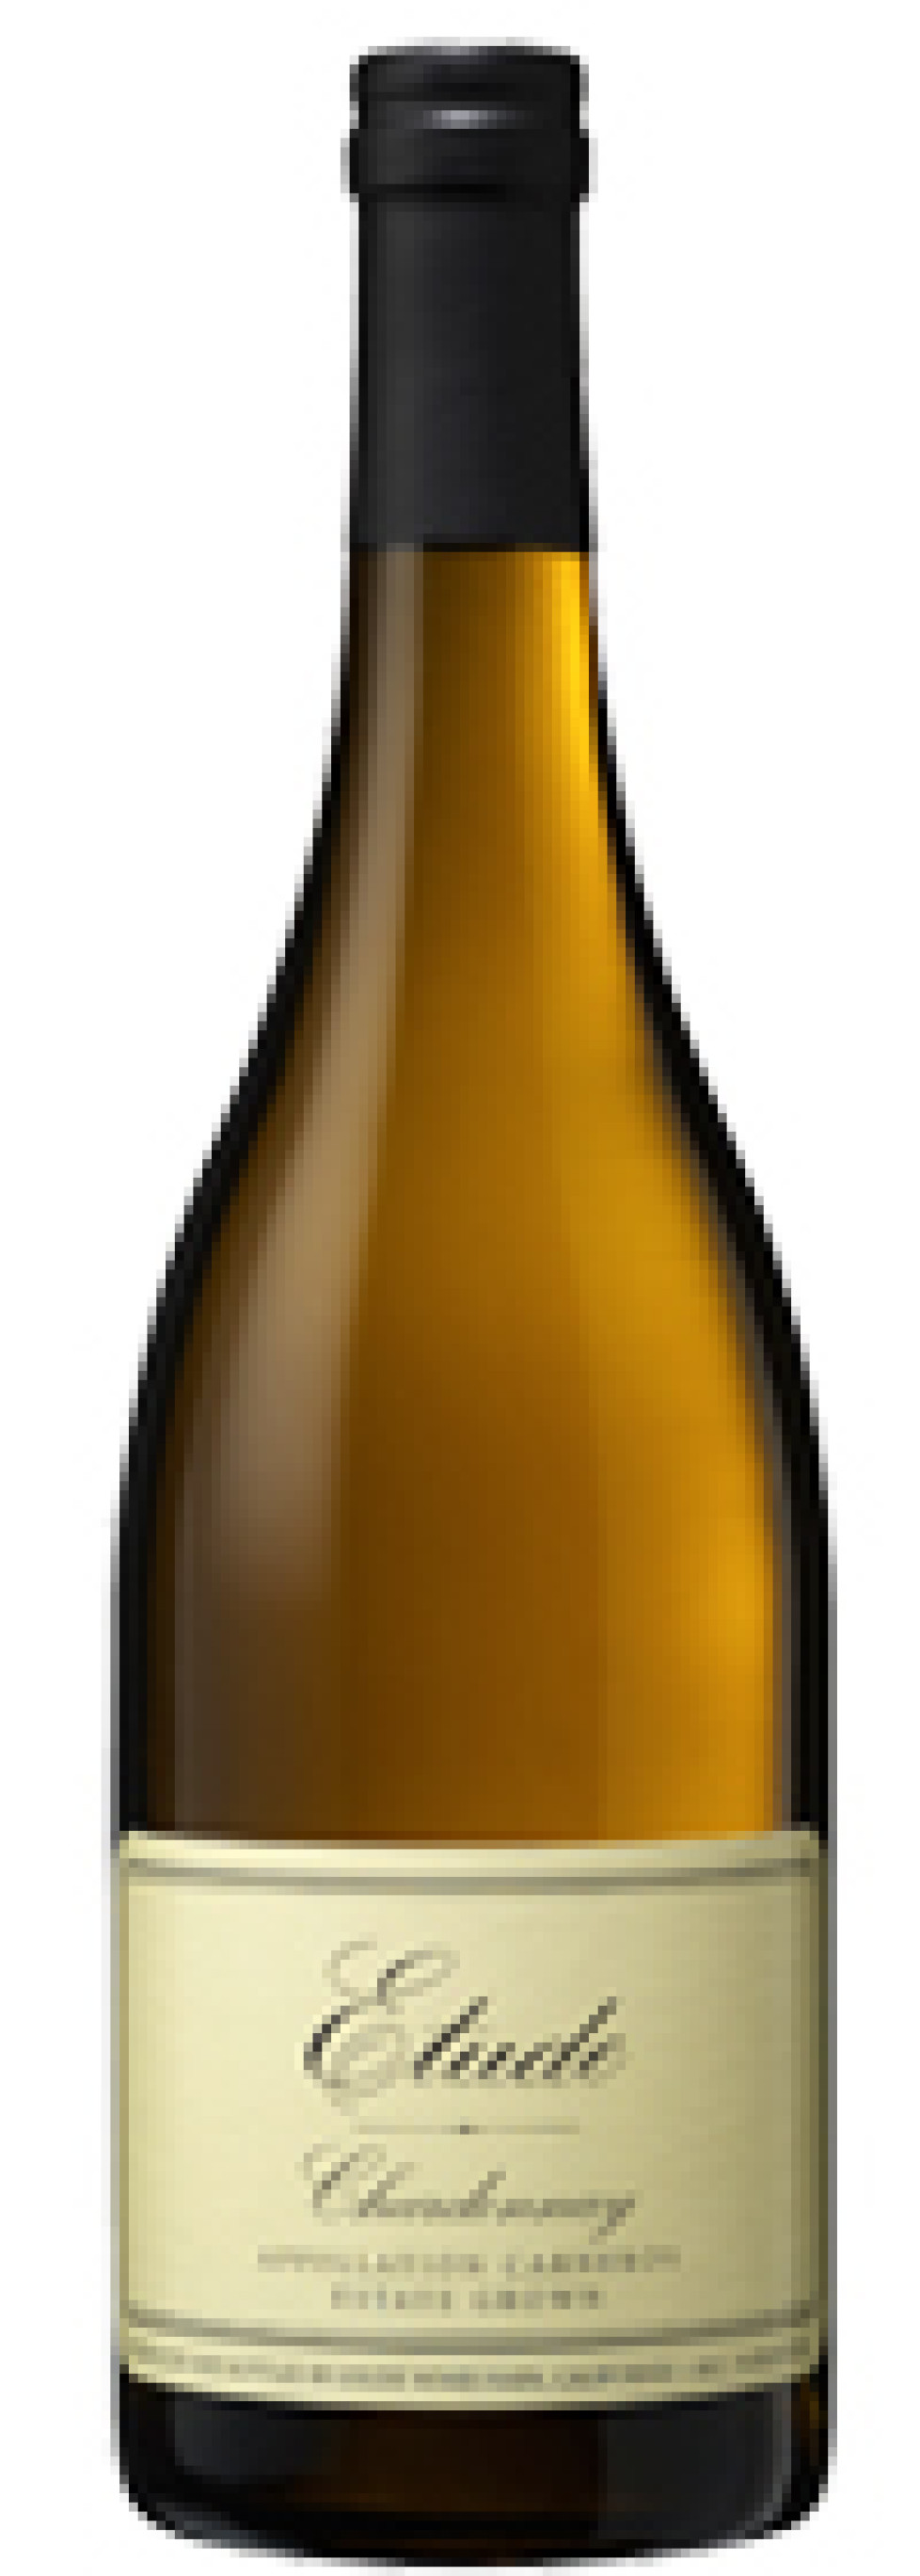 etude-chardonnay-estate-carneros-2010